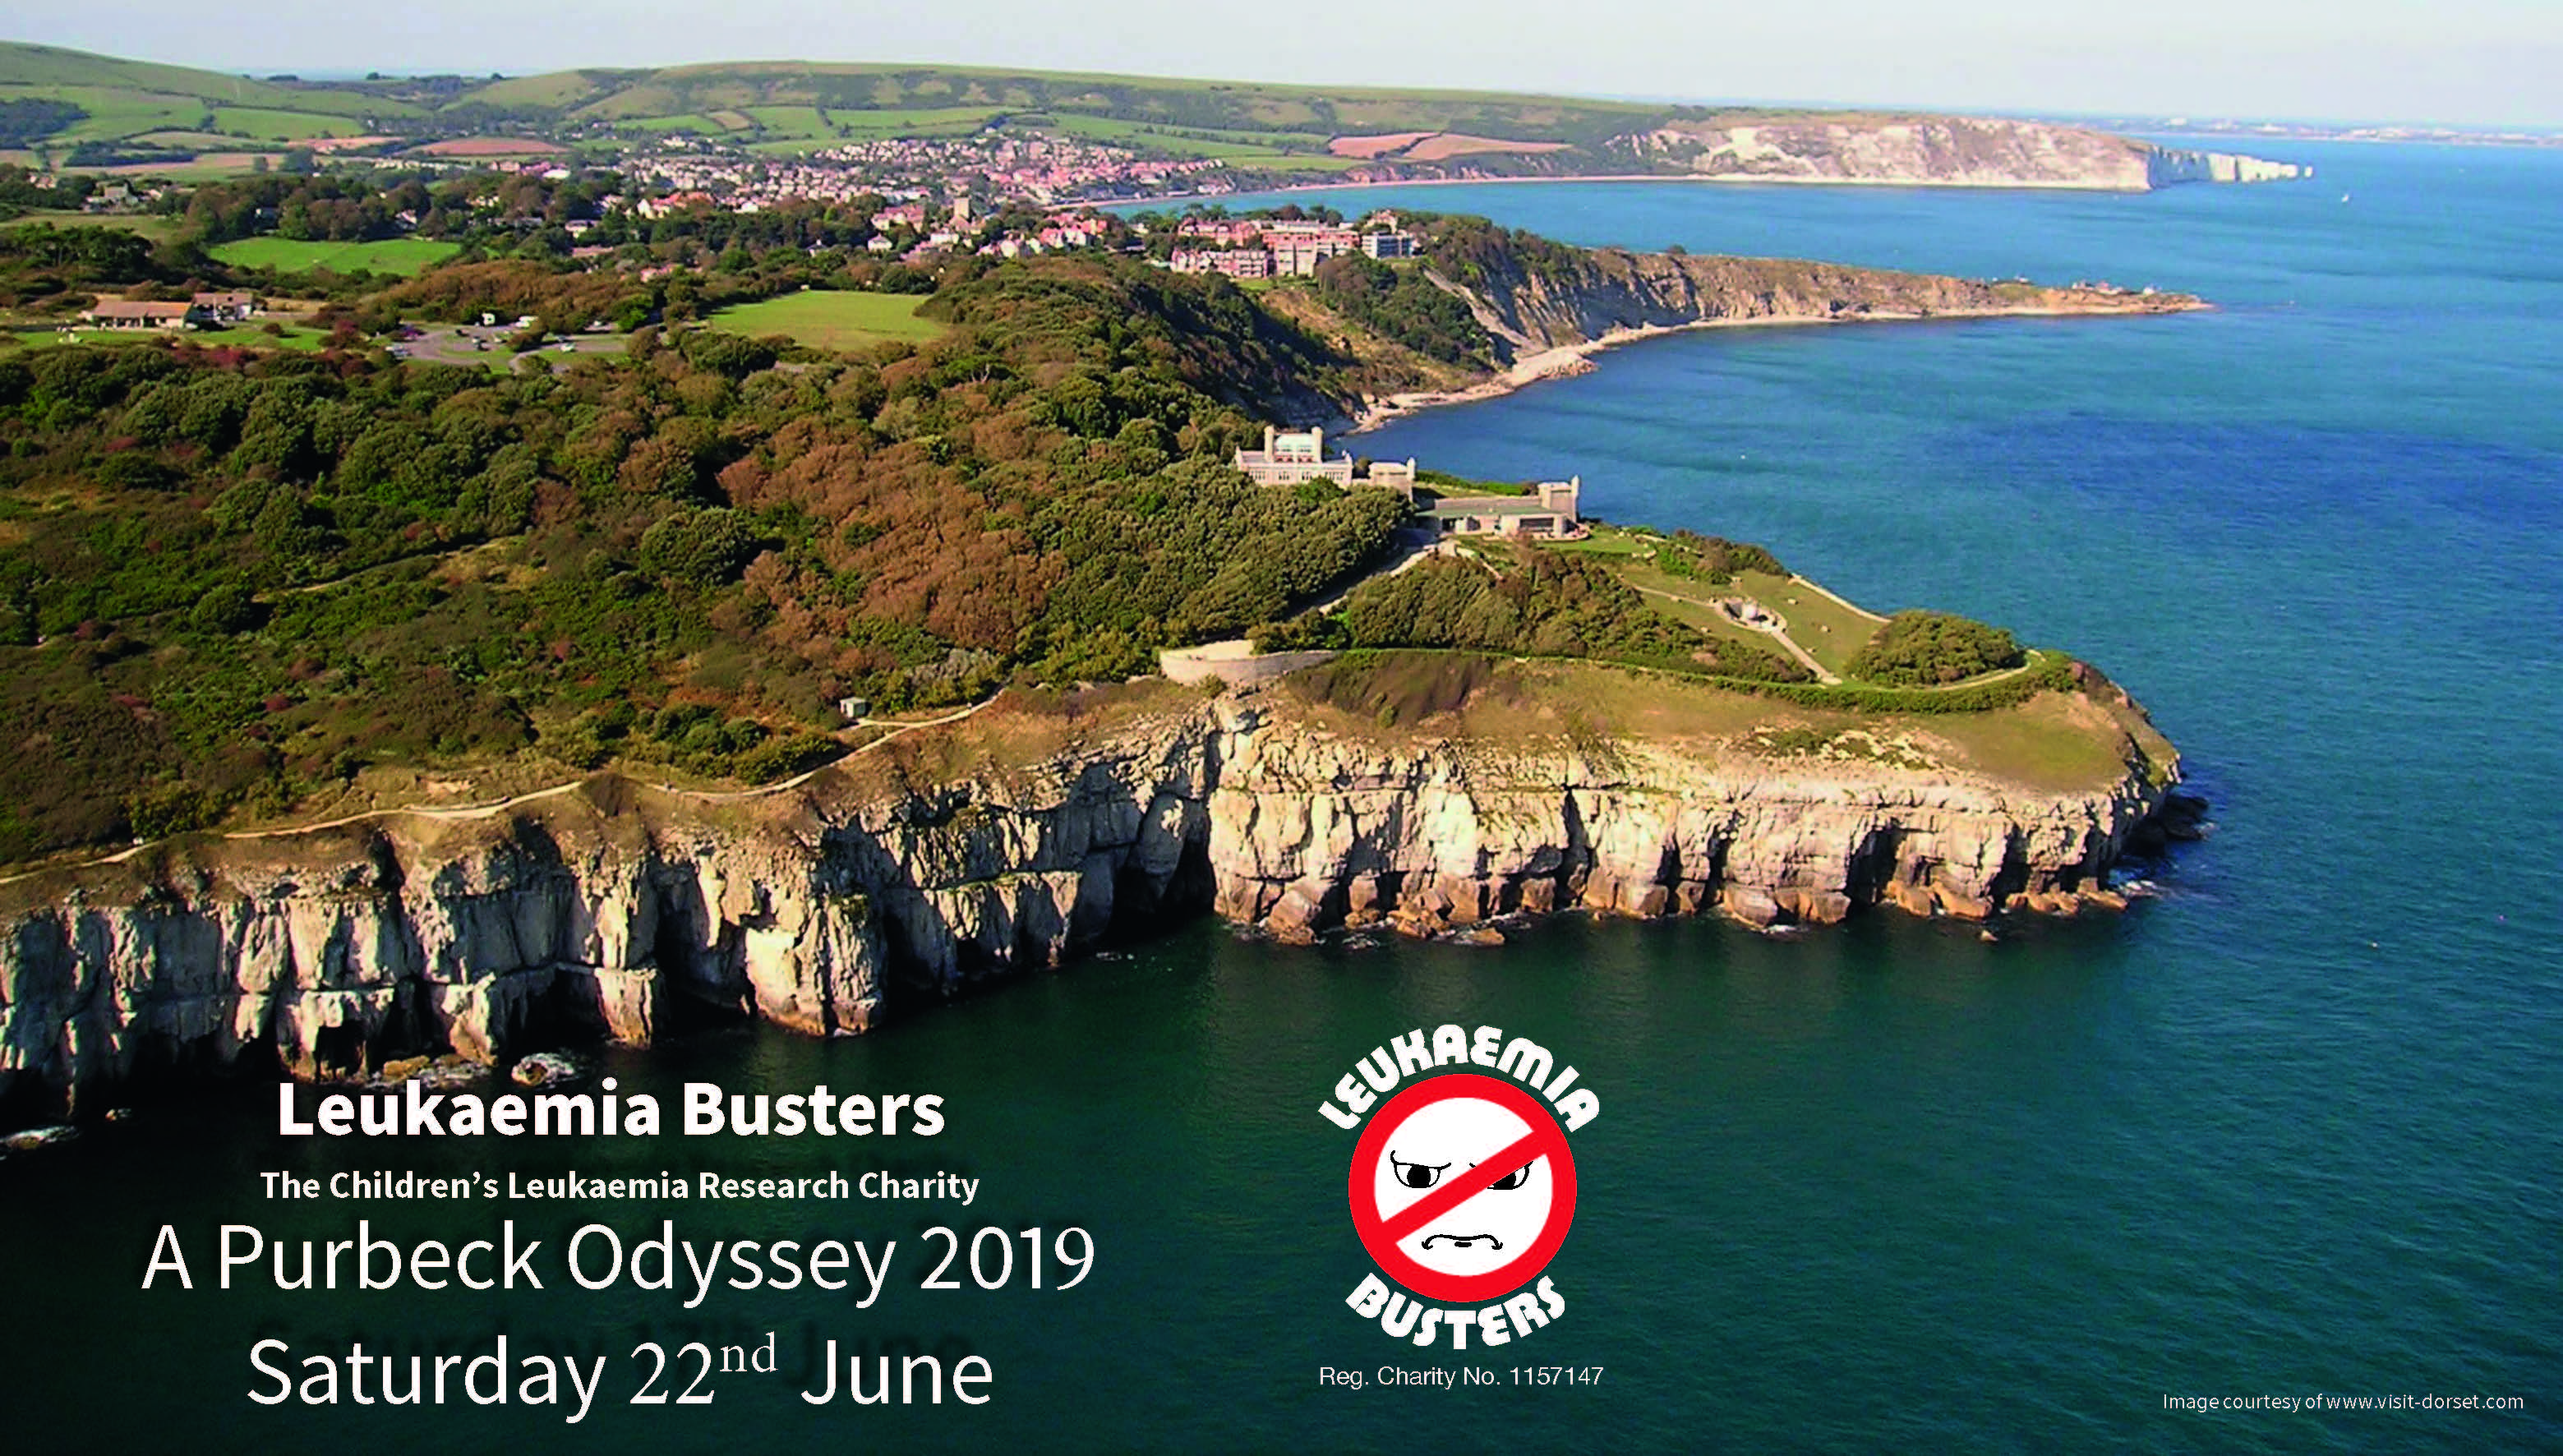 Leukaemia Busters Purbeck Odyssey 2019